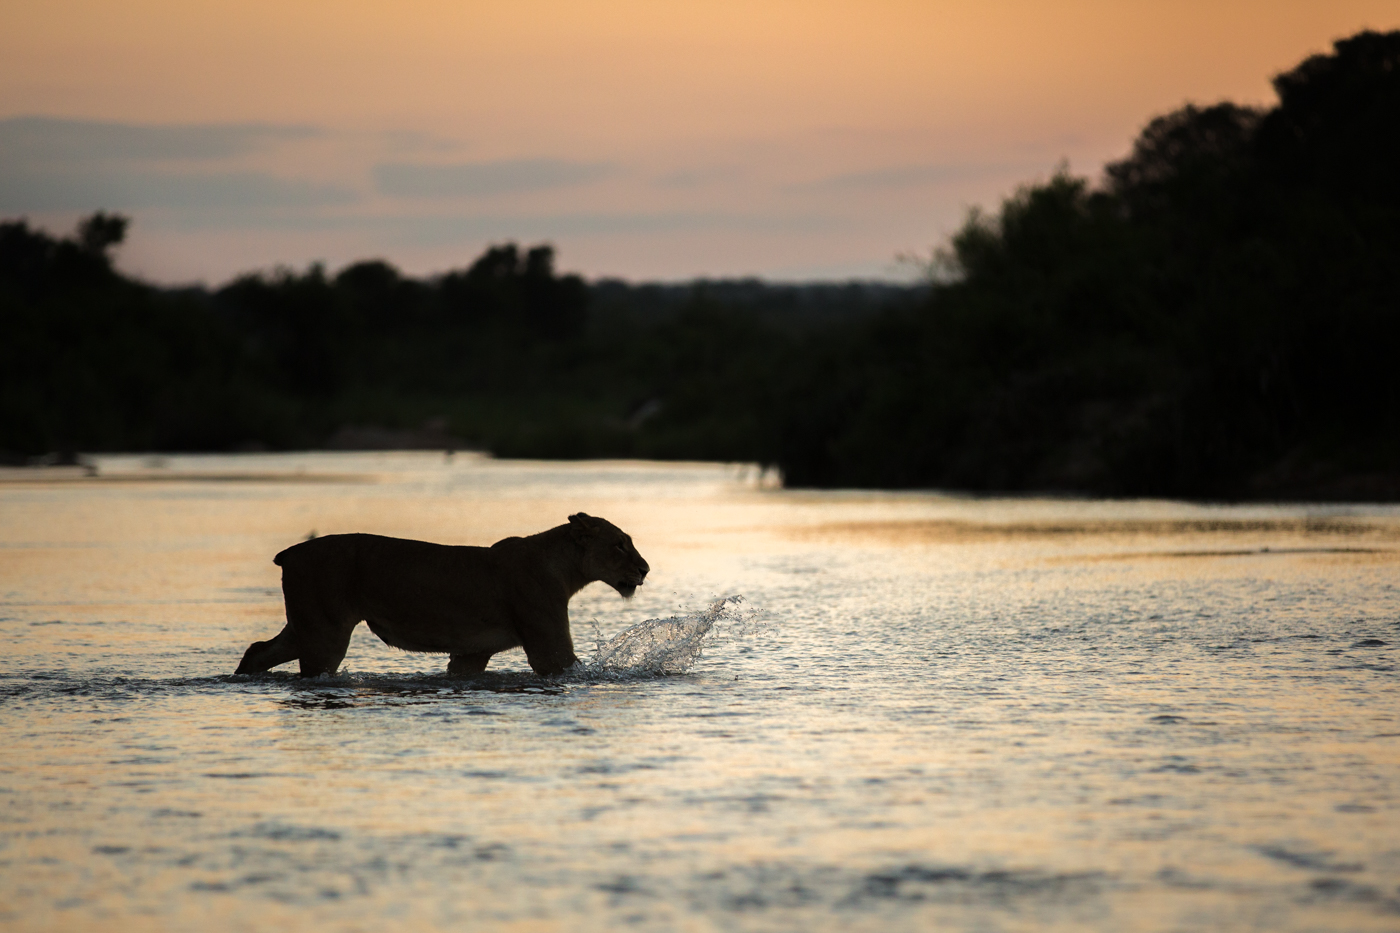 Tailless Lioness cross river